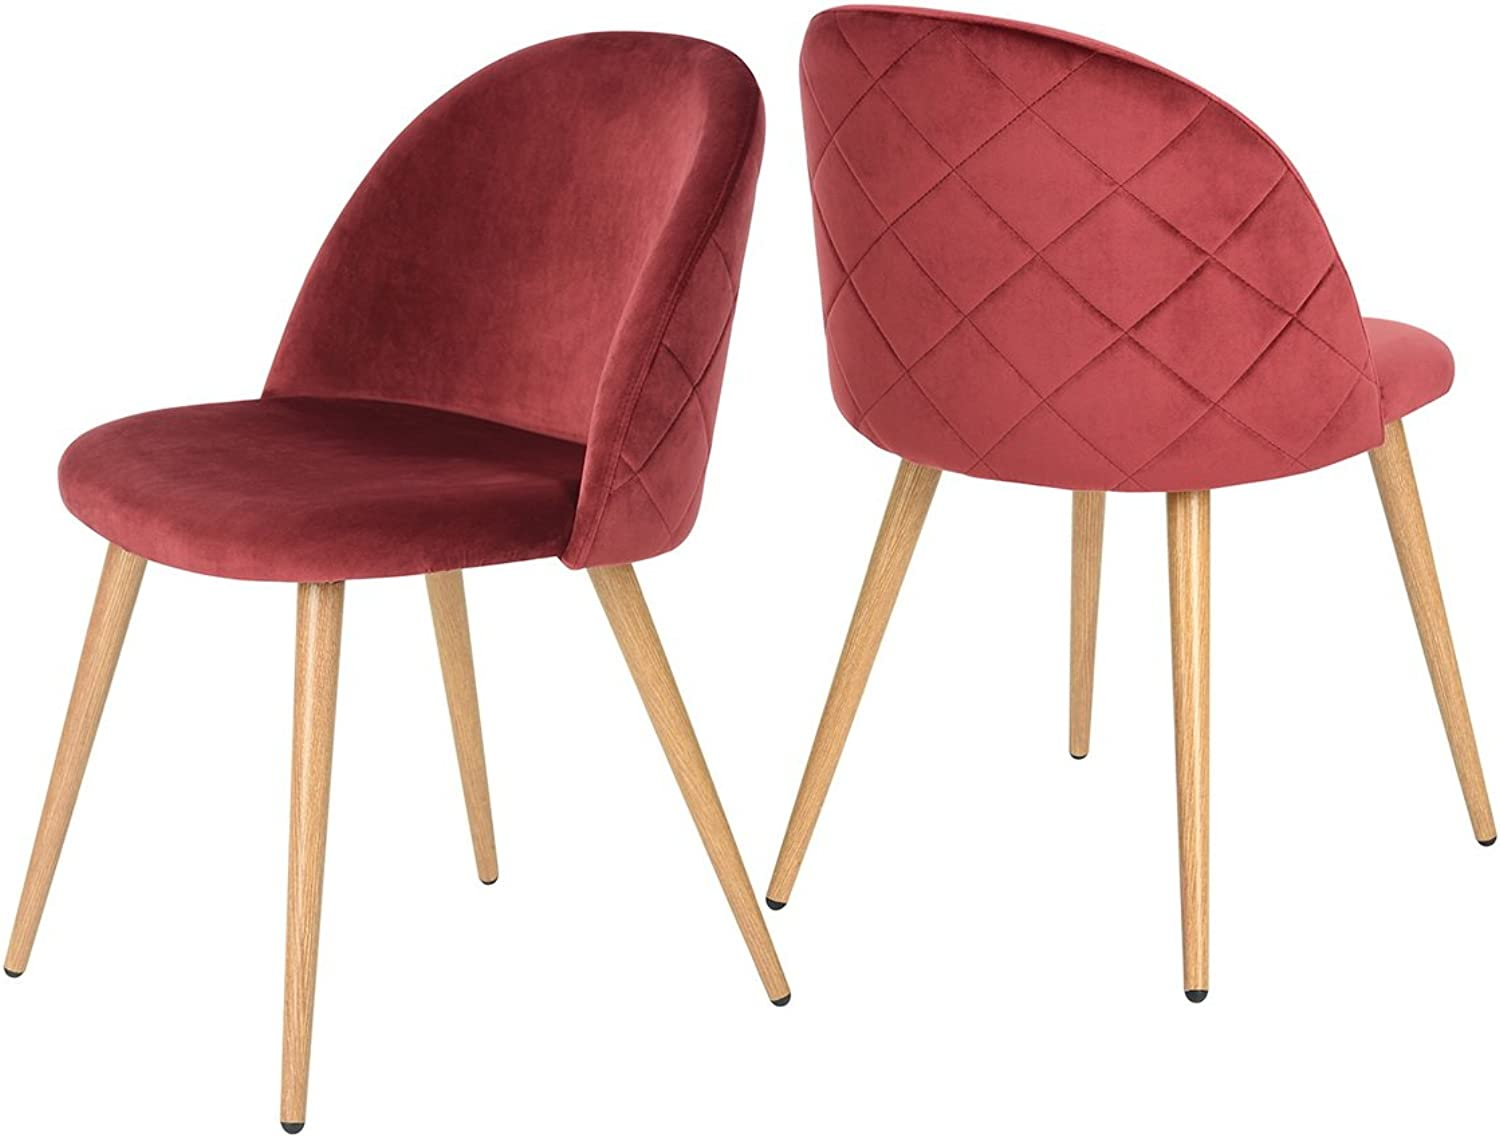 Dining Side Chair - Steel Legs Velvet Cover Red